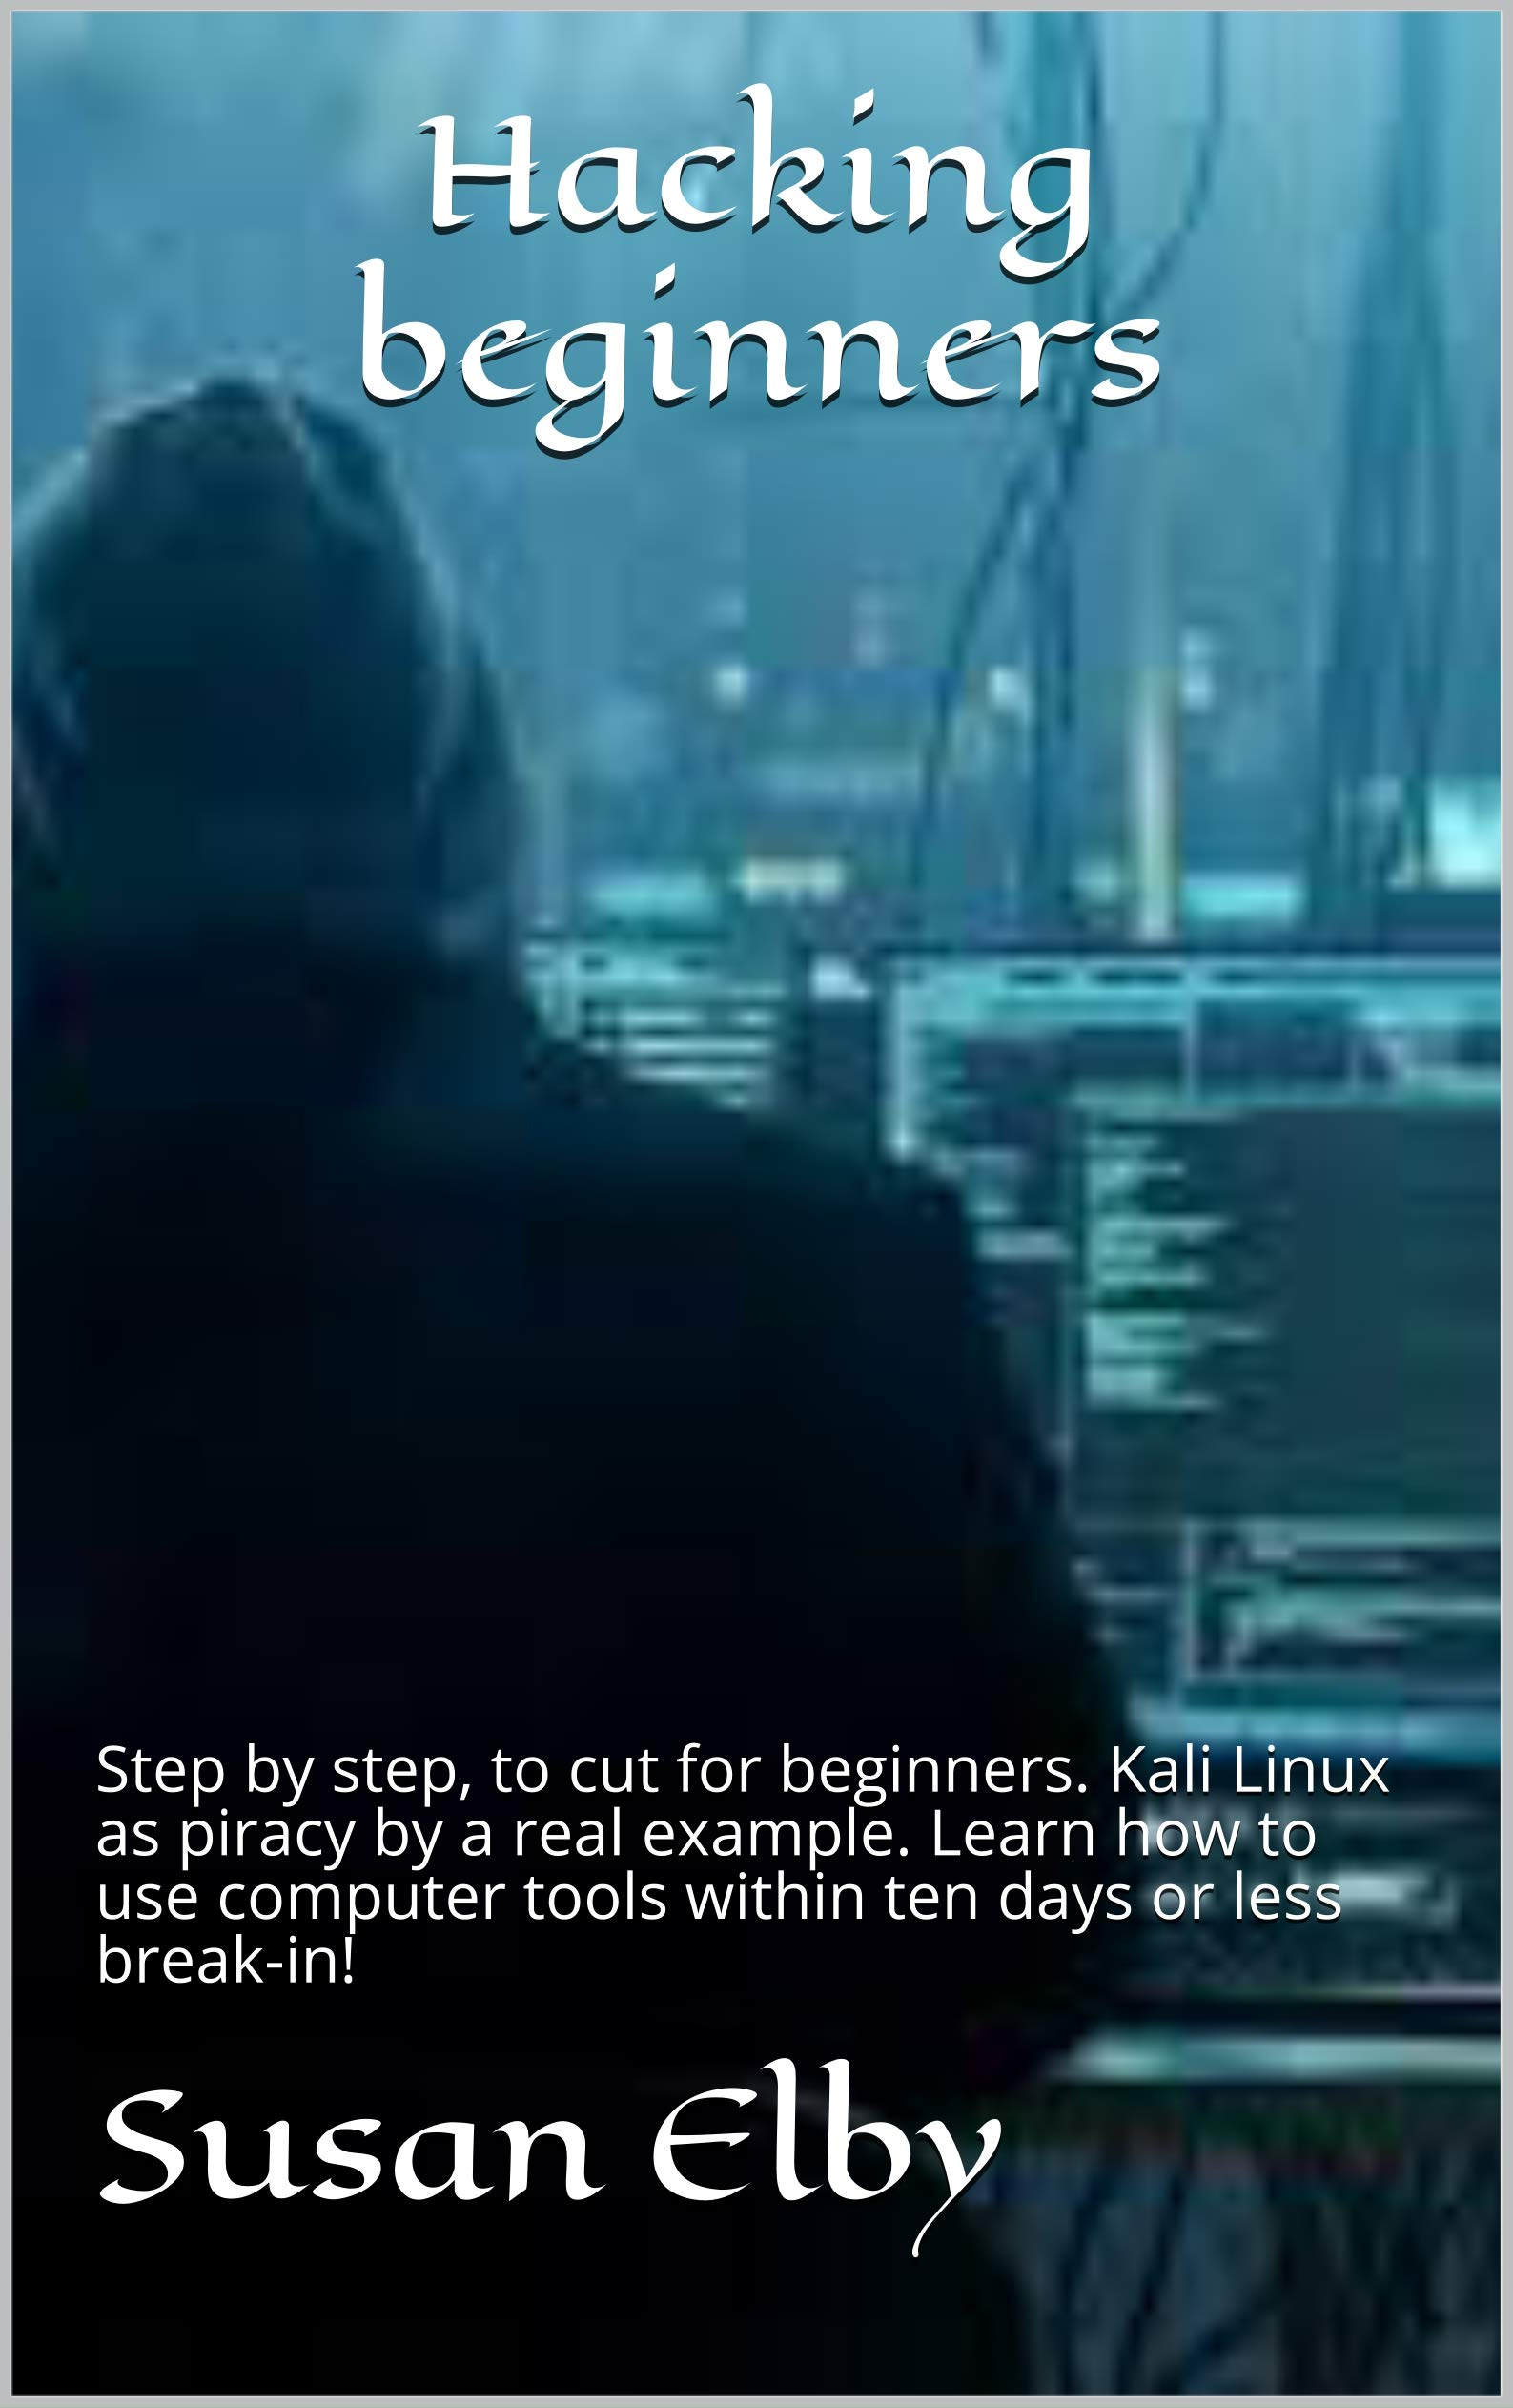 Hacking beginners: Step by step, to cut for beginners. Kali Linux as piracy by a real example. Learn how to use computer tools within ten days or less break-in!